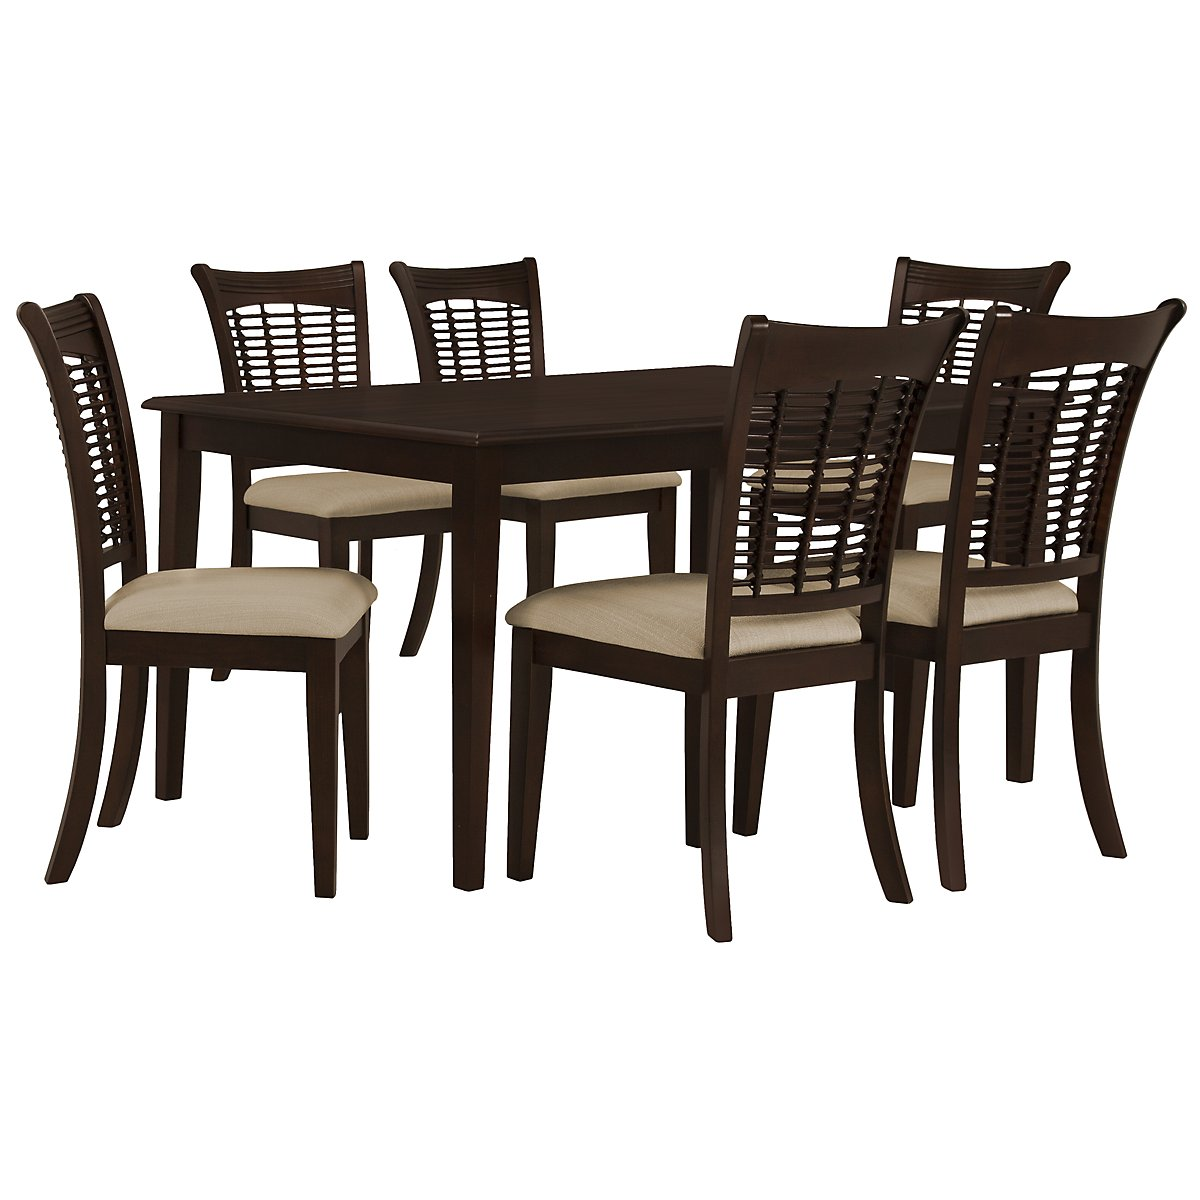 dining table with 4 chairs. Black Bedroom Furniture Sets. Home Design Ideas